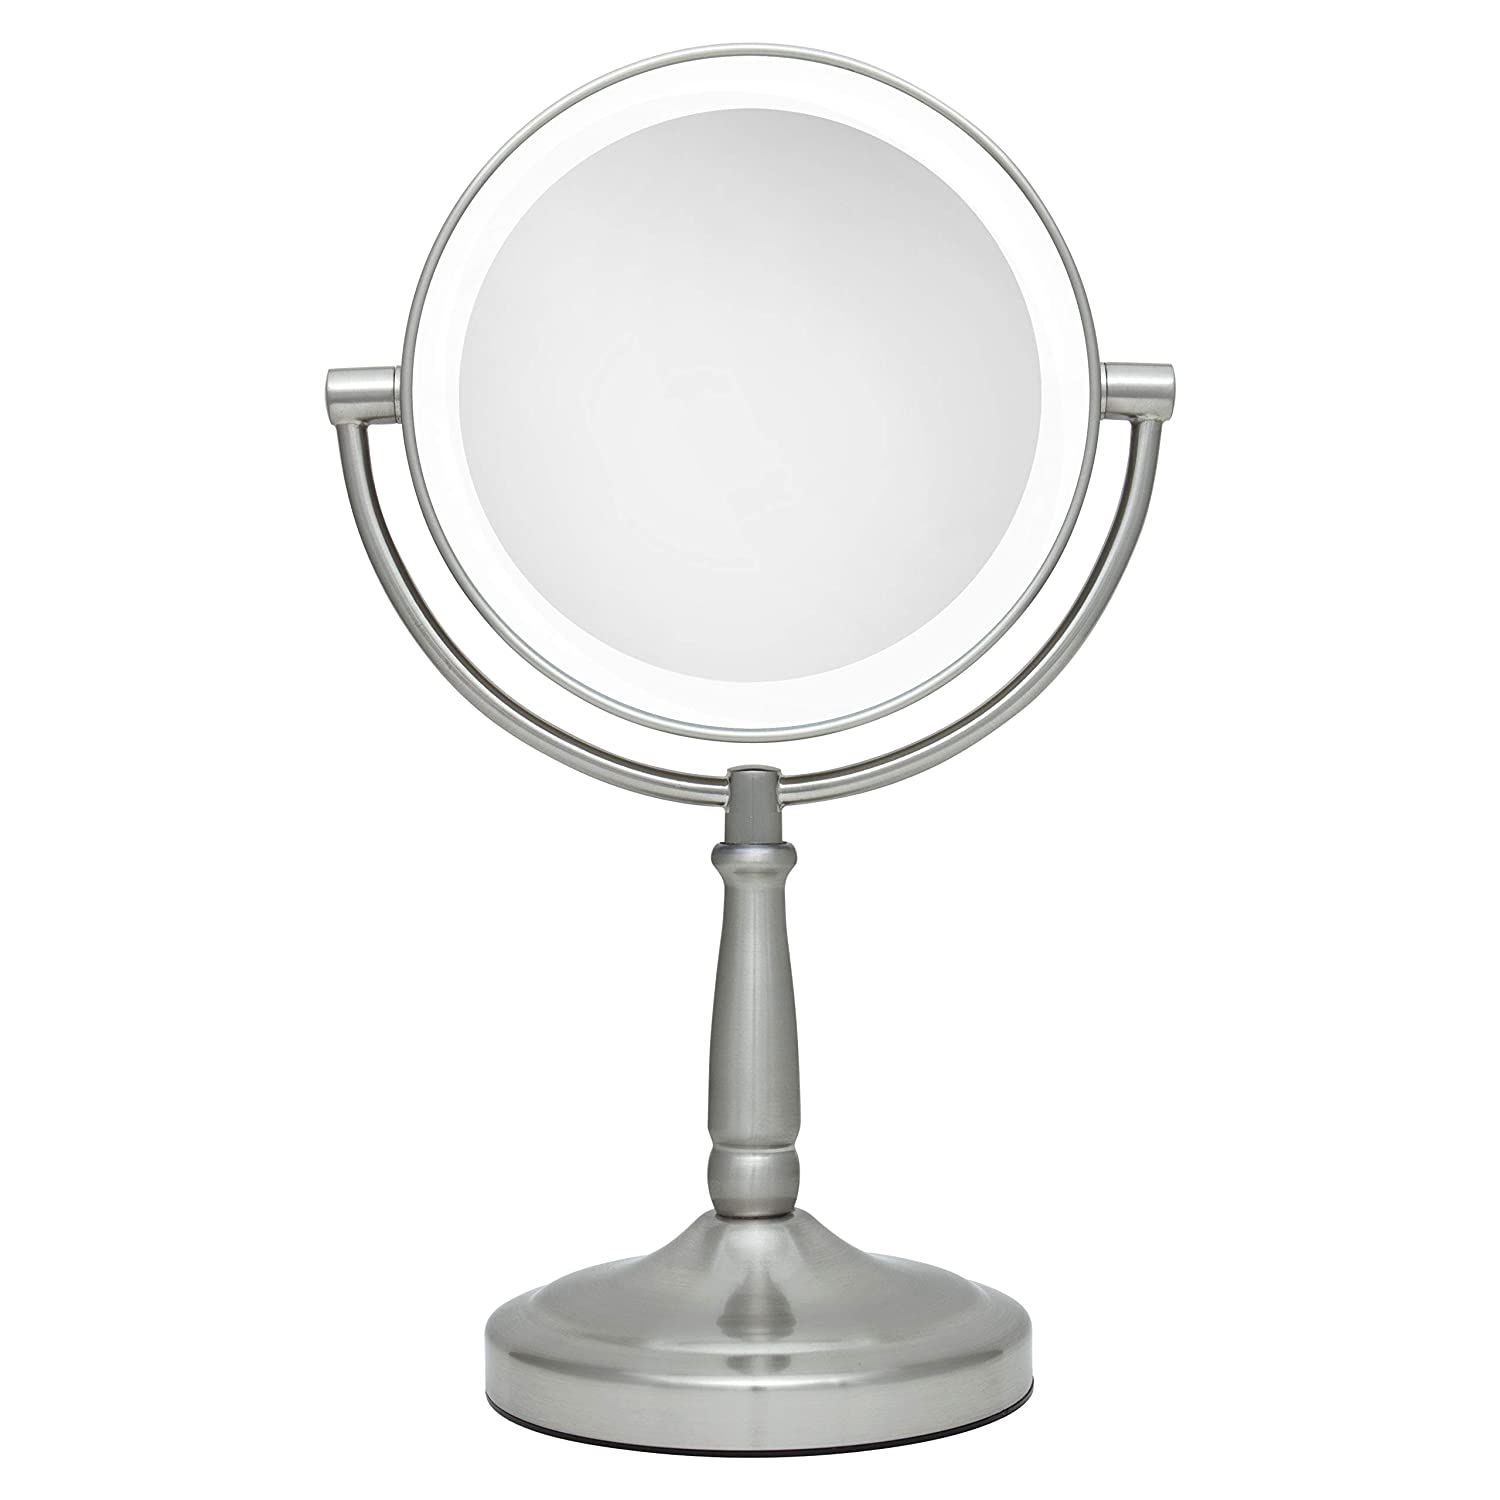 Amazon Com Zadro Led Lighted Dual Sided 5x 1x Magnification Cordless Vanity Beauty Makeup Mirror Satin Nickel 7 Inch Ledv45 Personal Makeup Mirrors Beauty